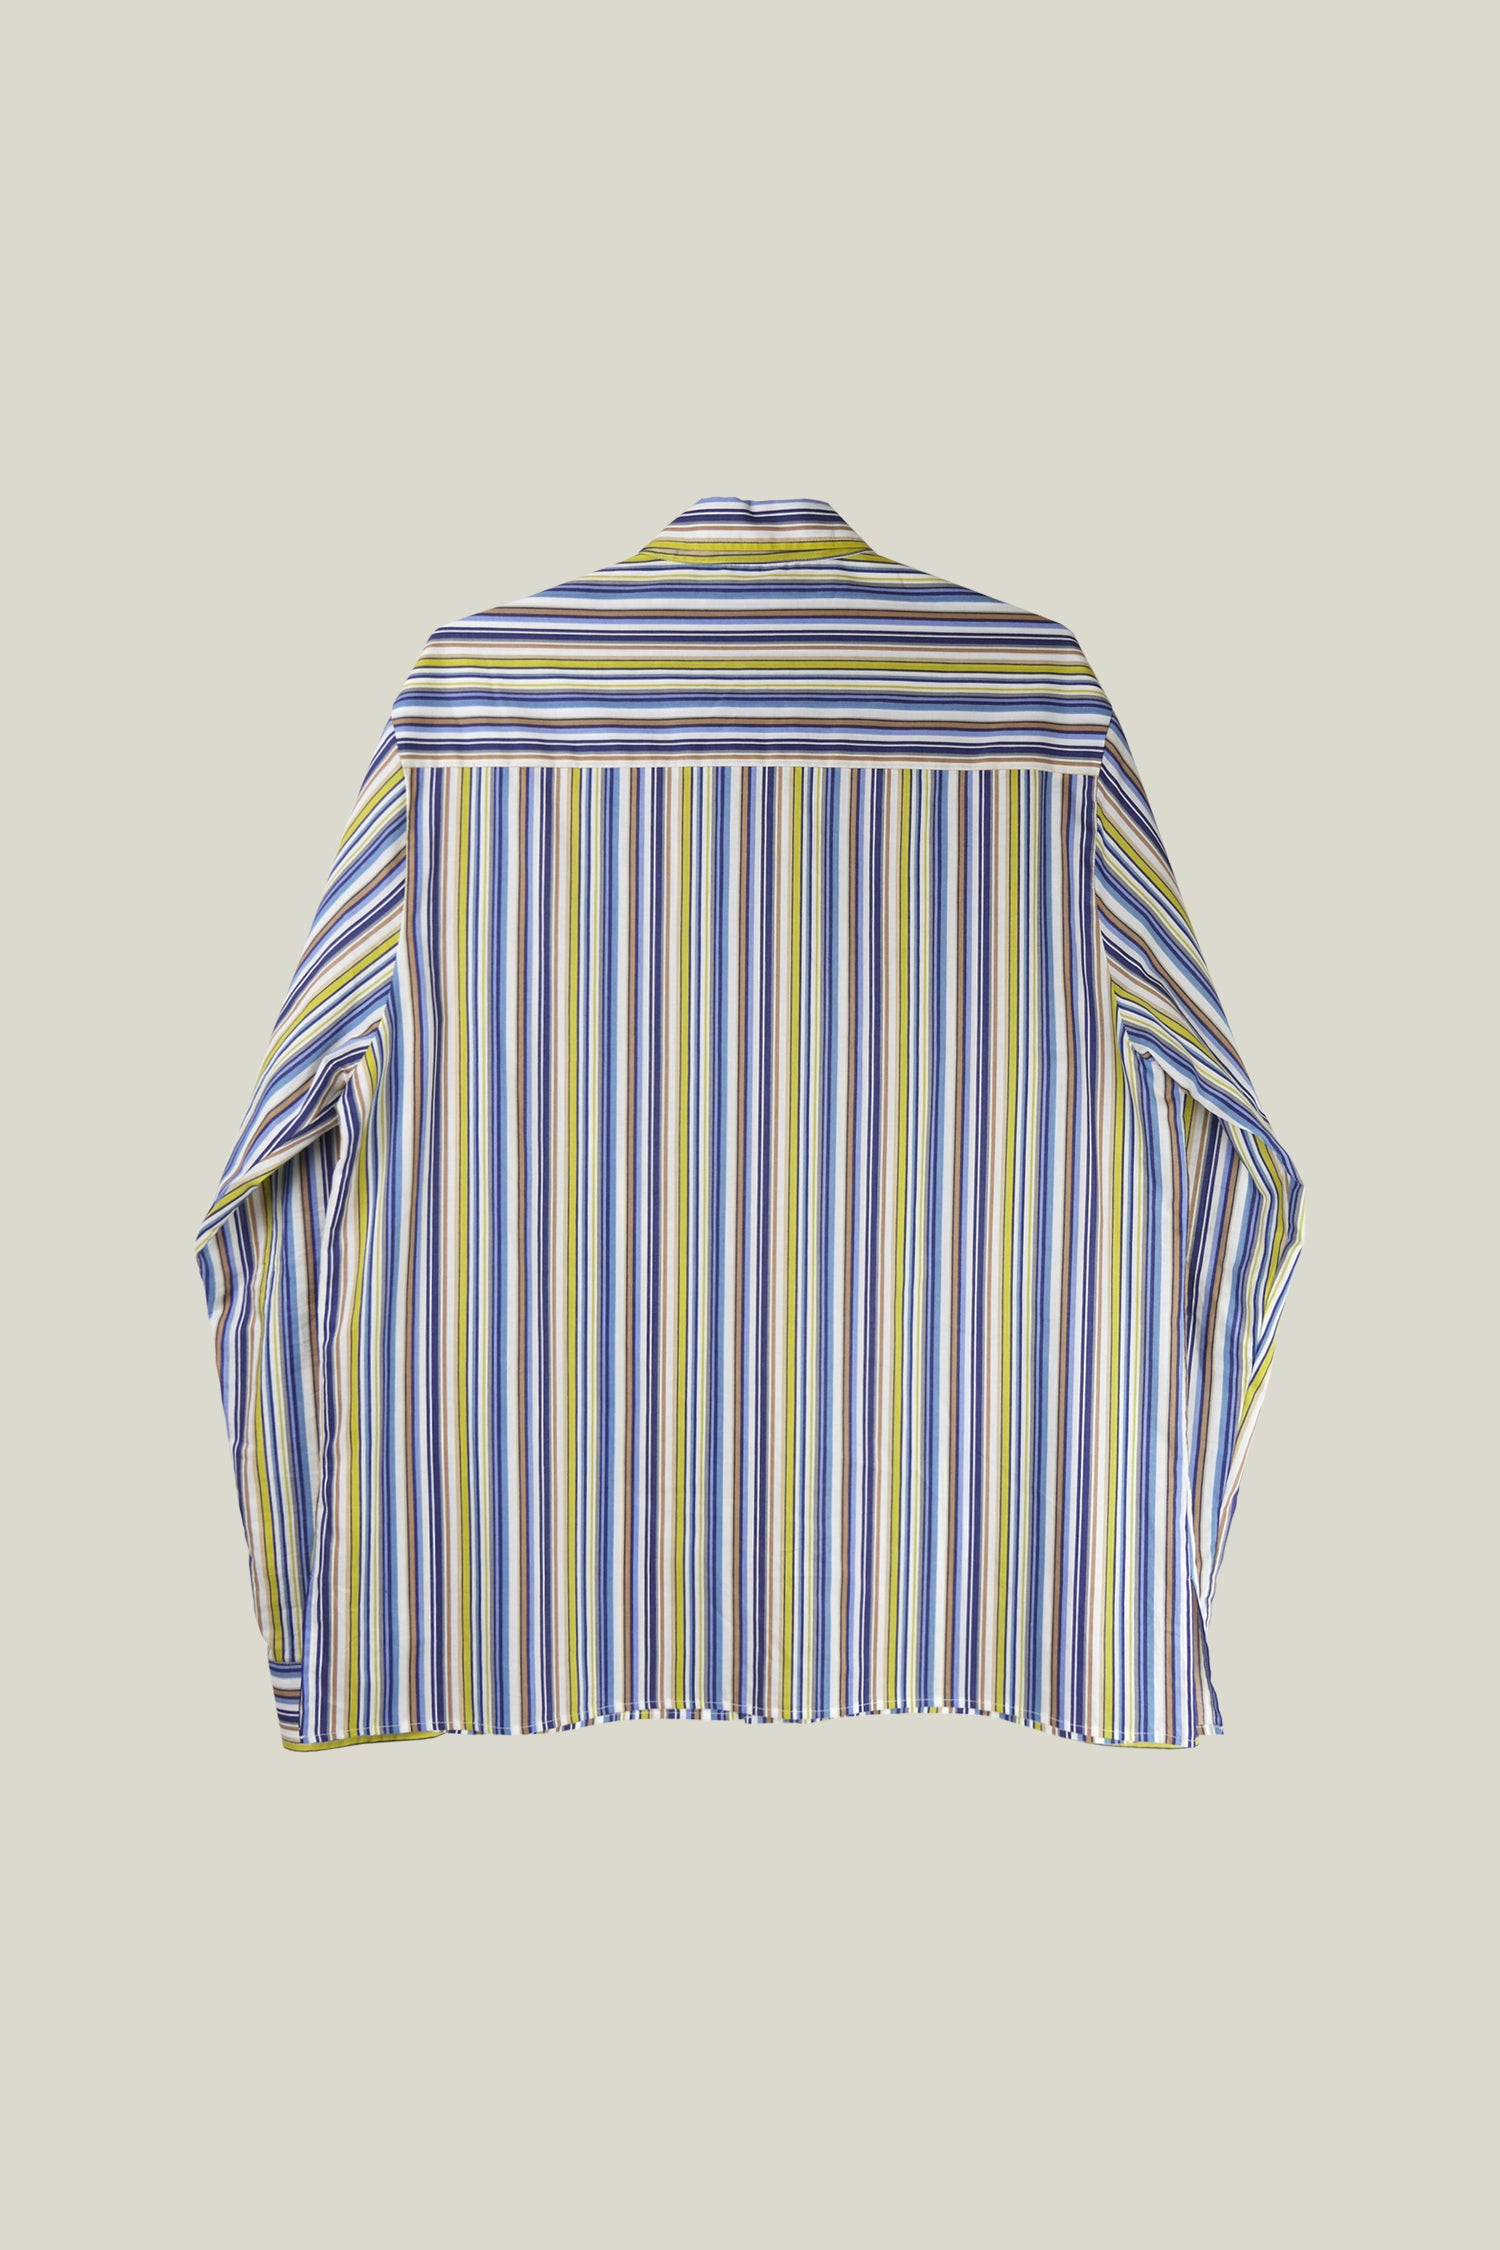 Striped shirt for summer, 100% cotton.